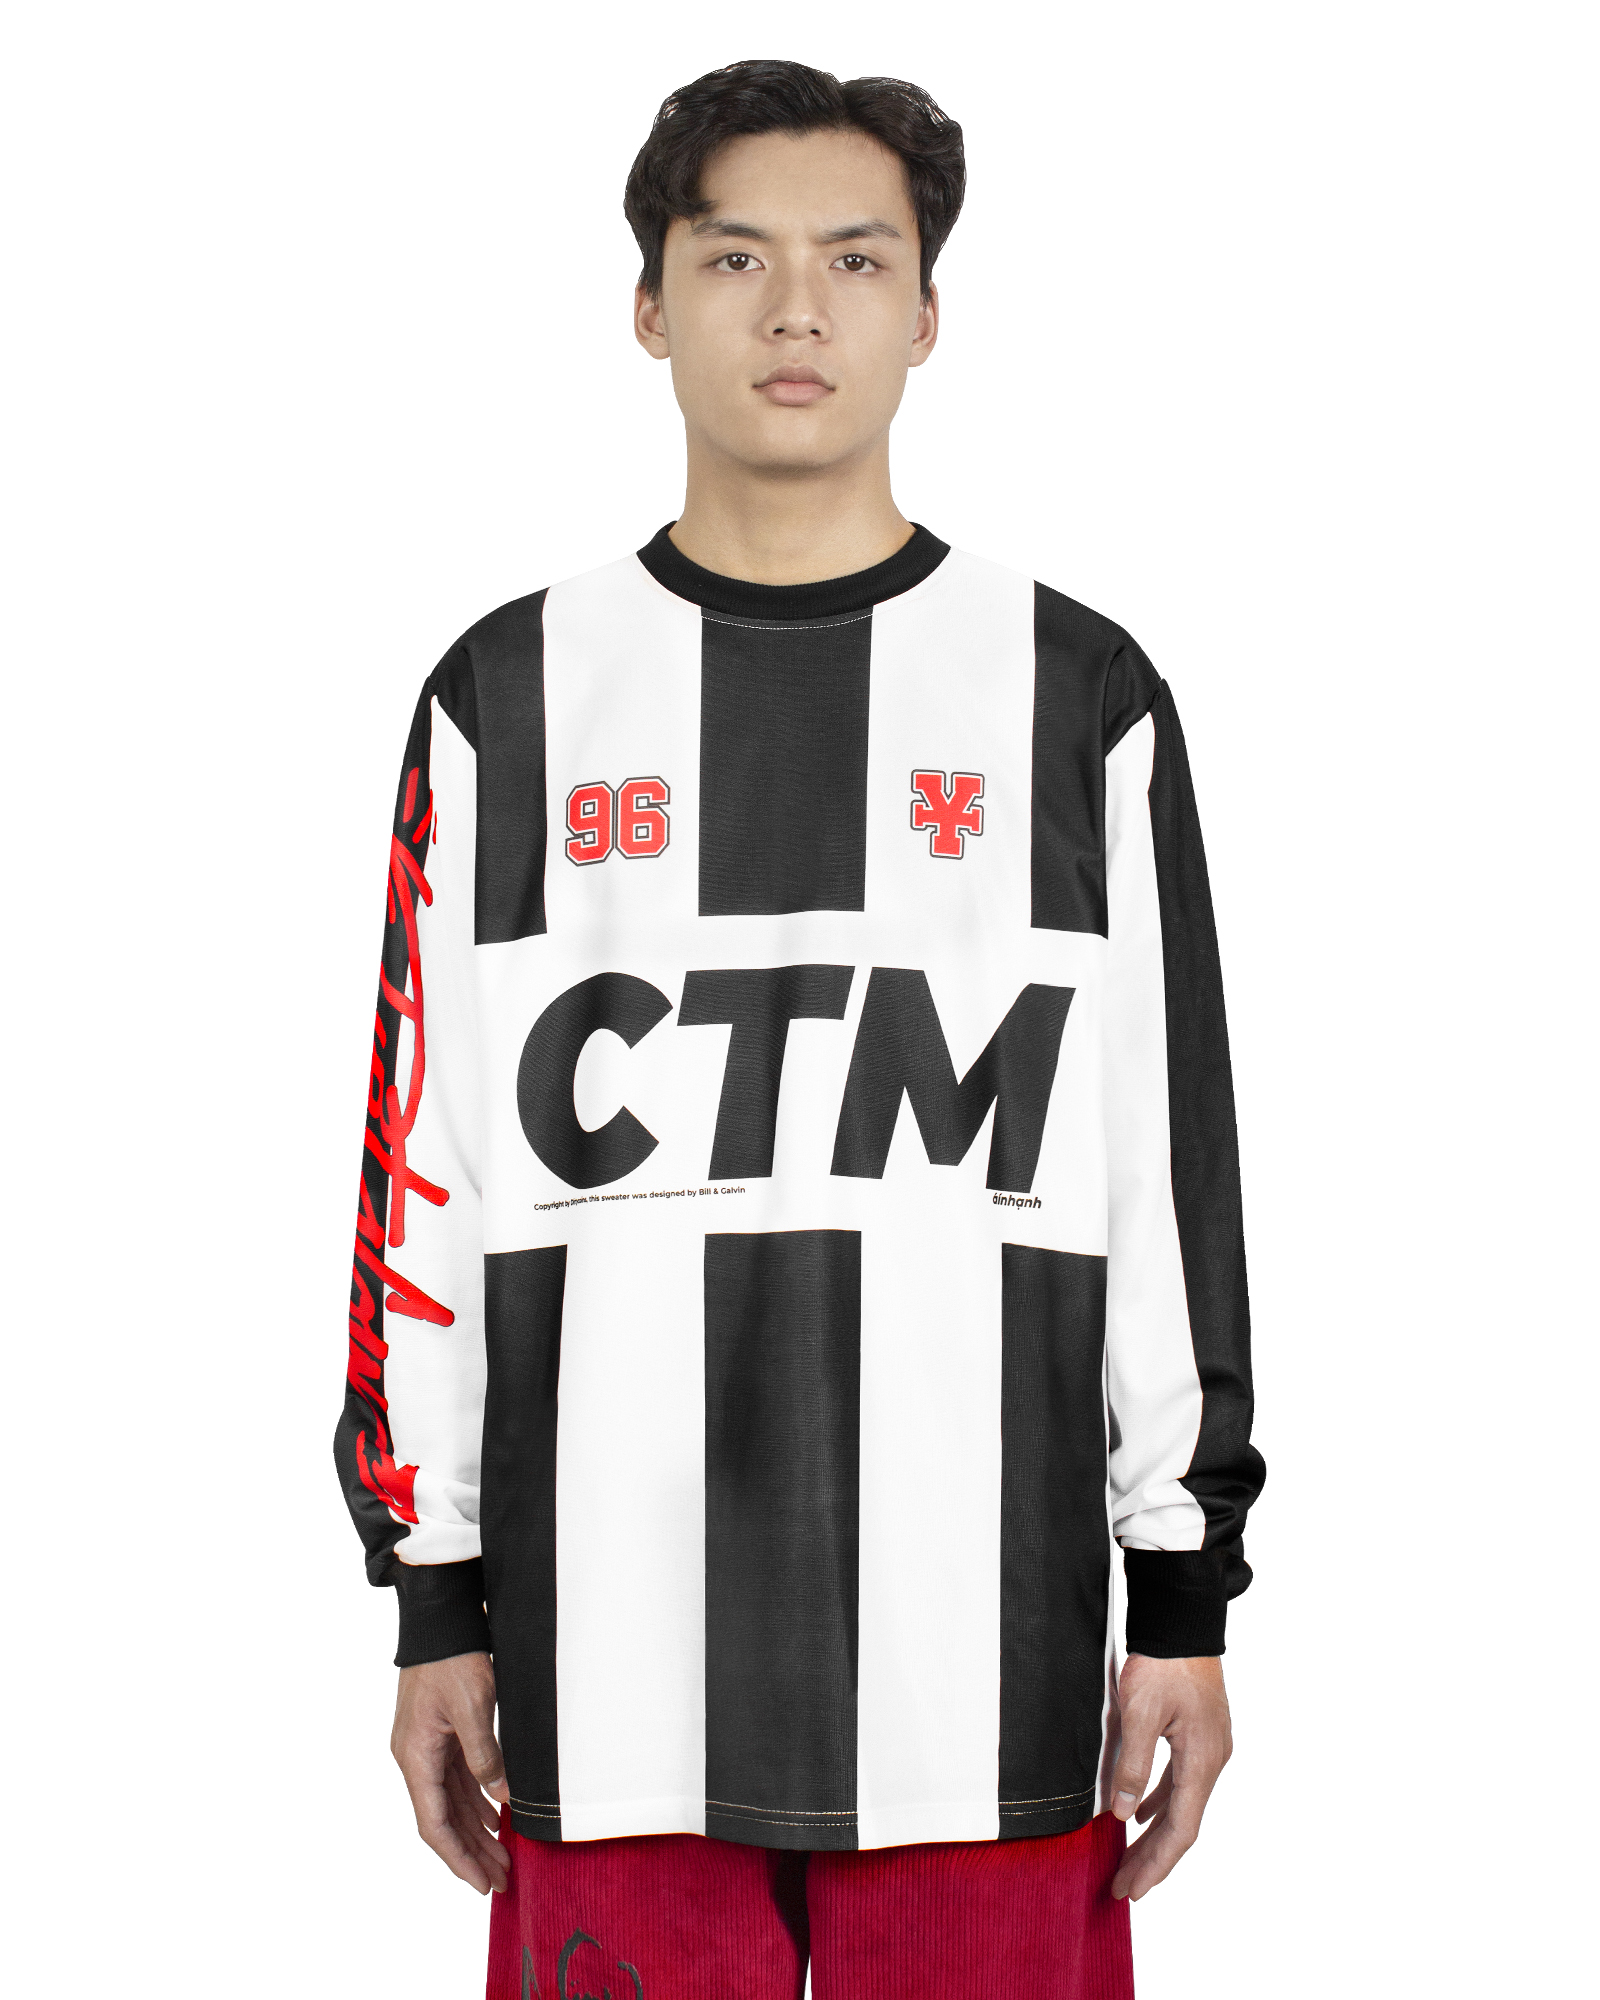 DirtyCoins CTM L/S Soccer Jersey